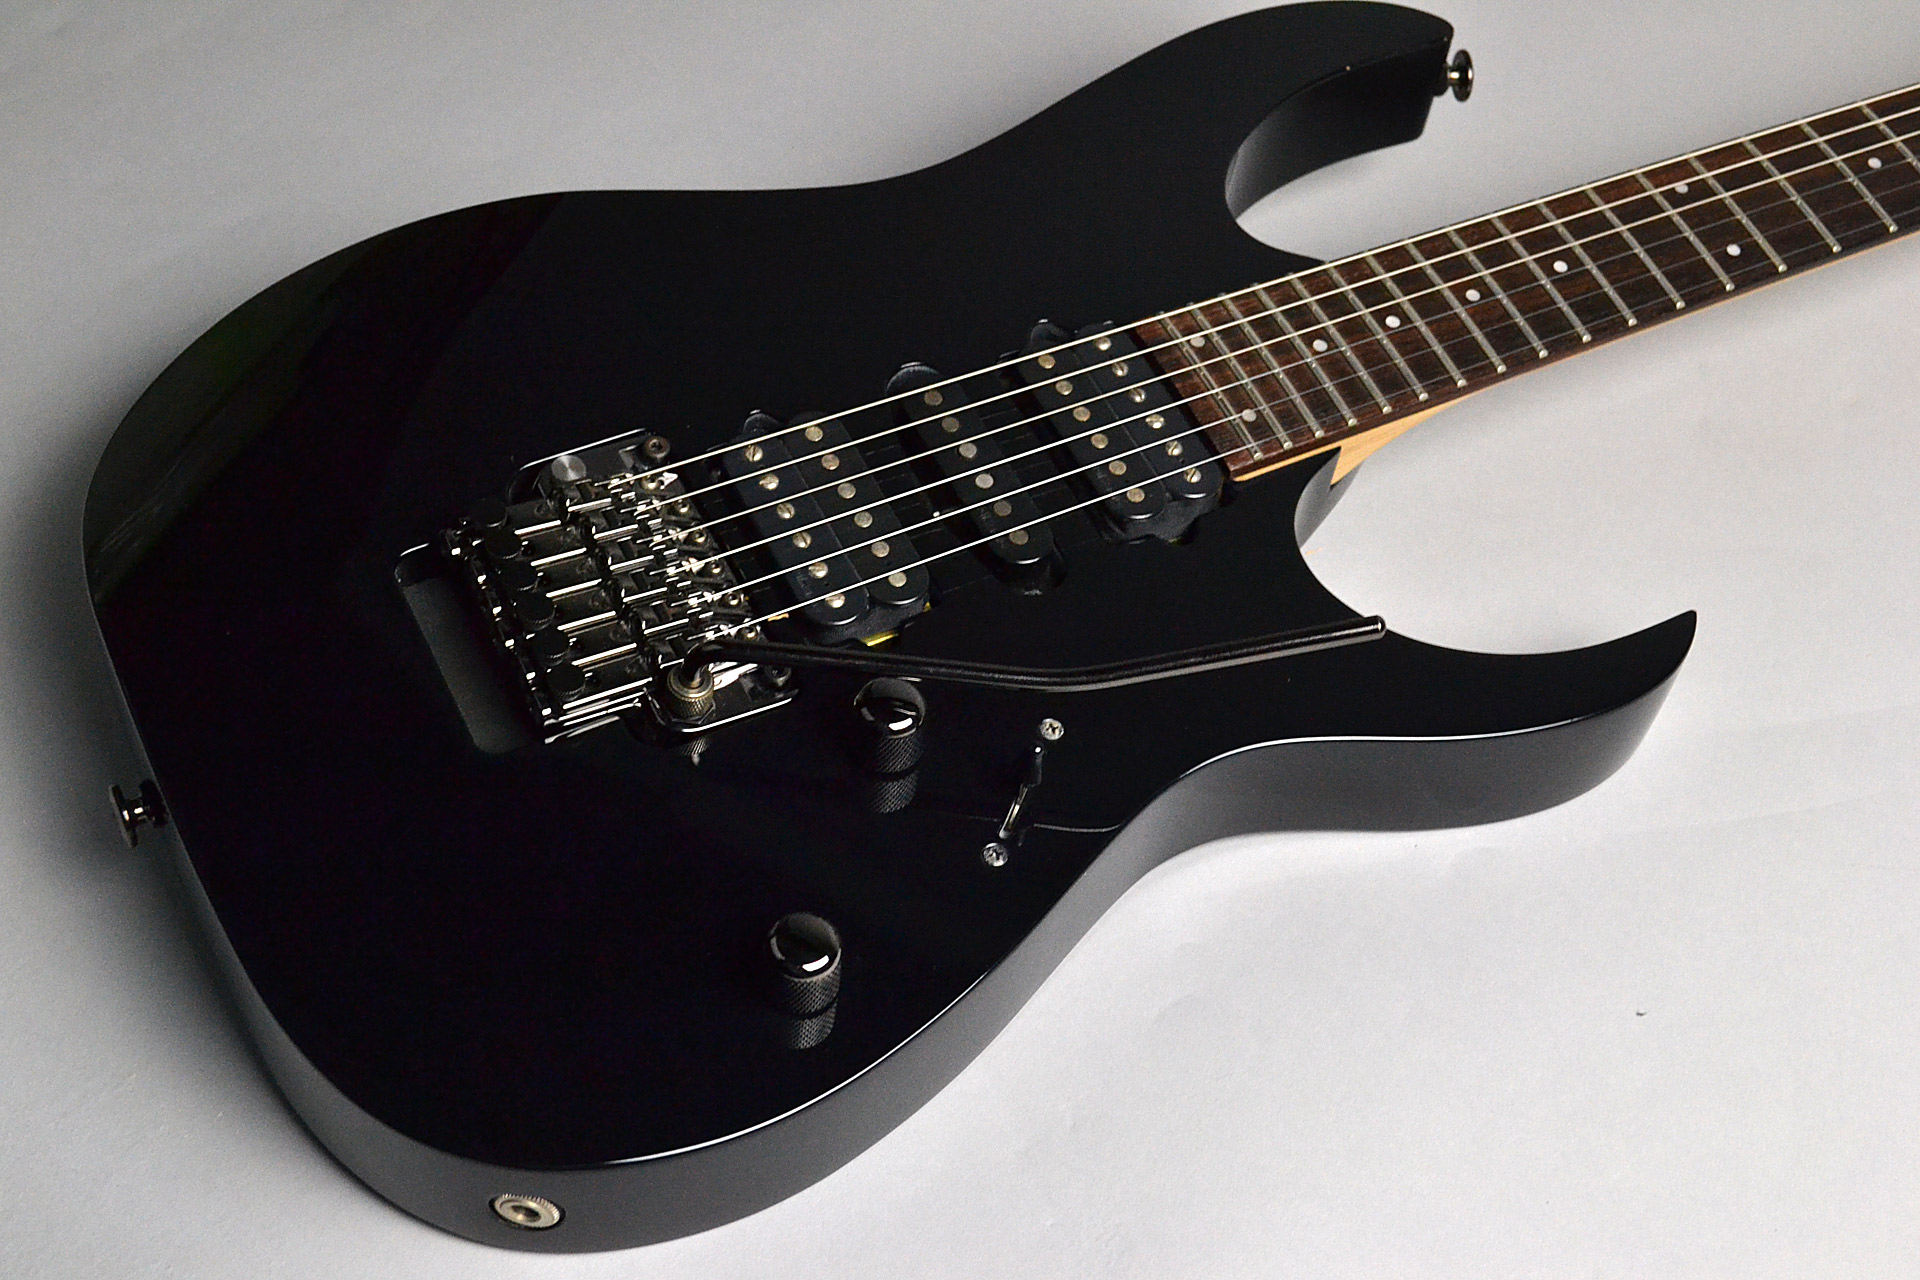 USED/ RG2570ZA MYM Prestige Mystic Night Metallicのボディトップ-アップ画像